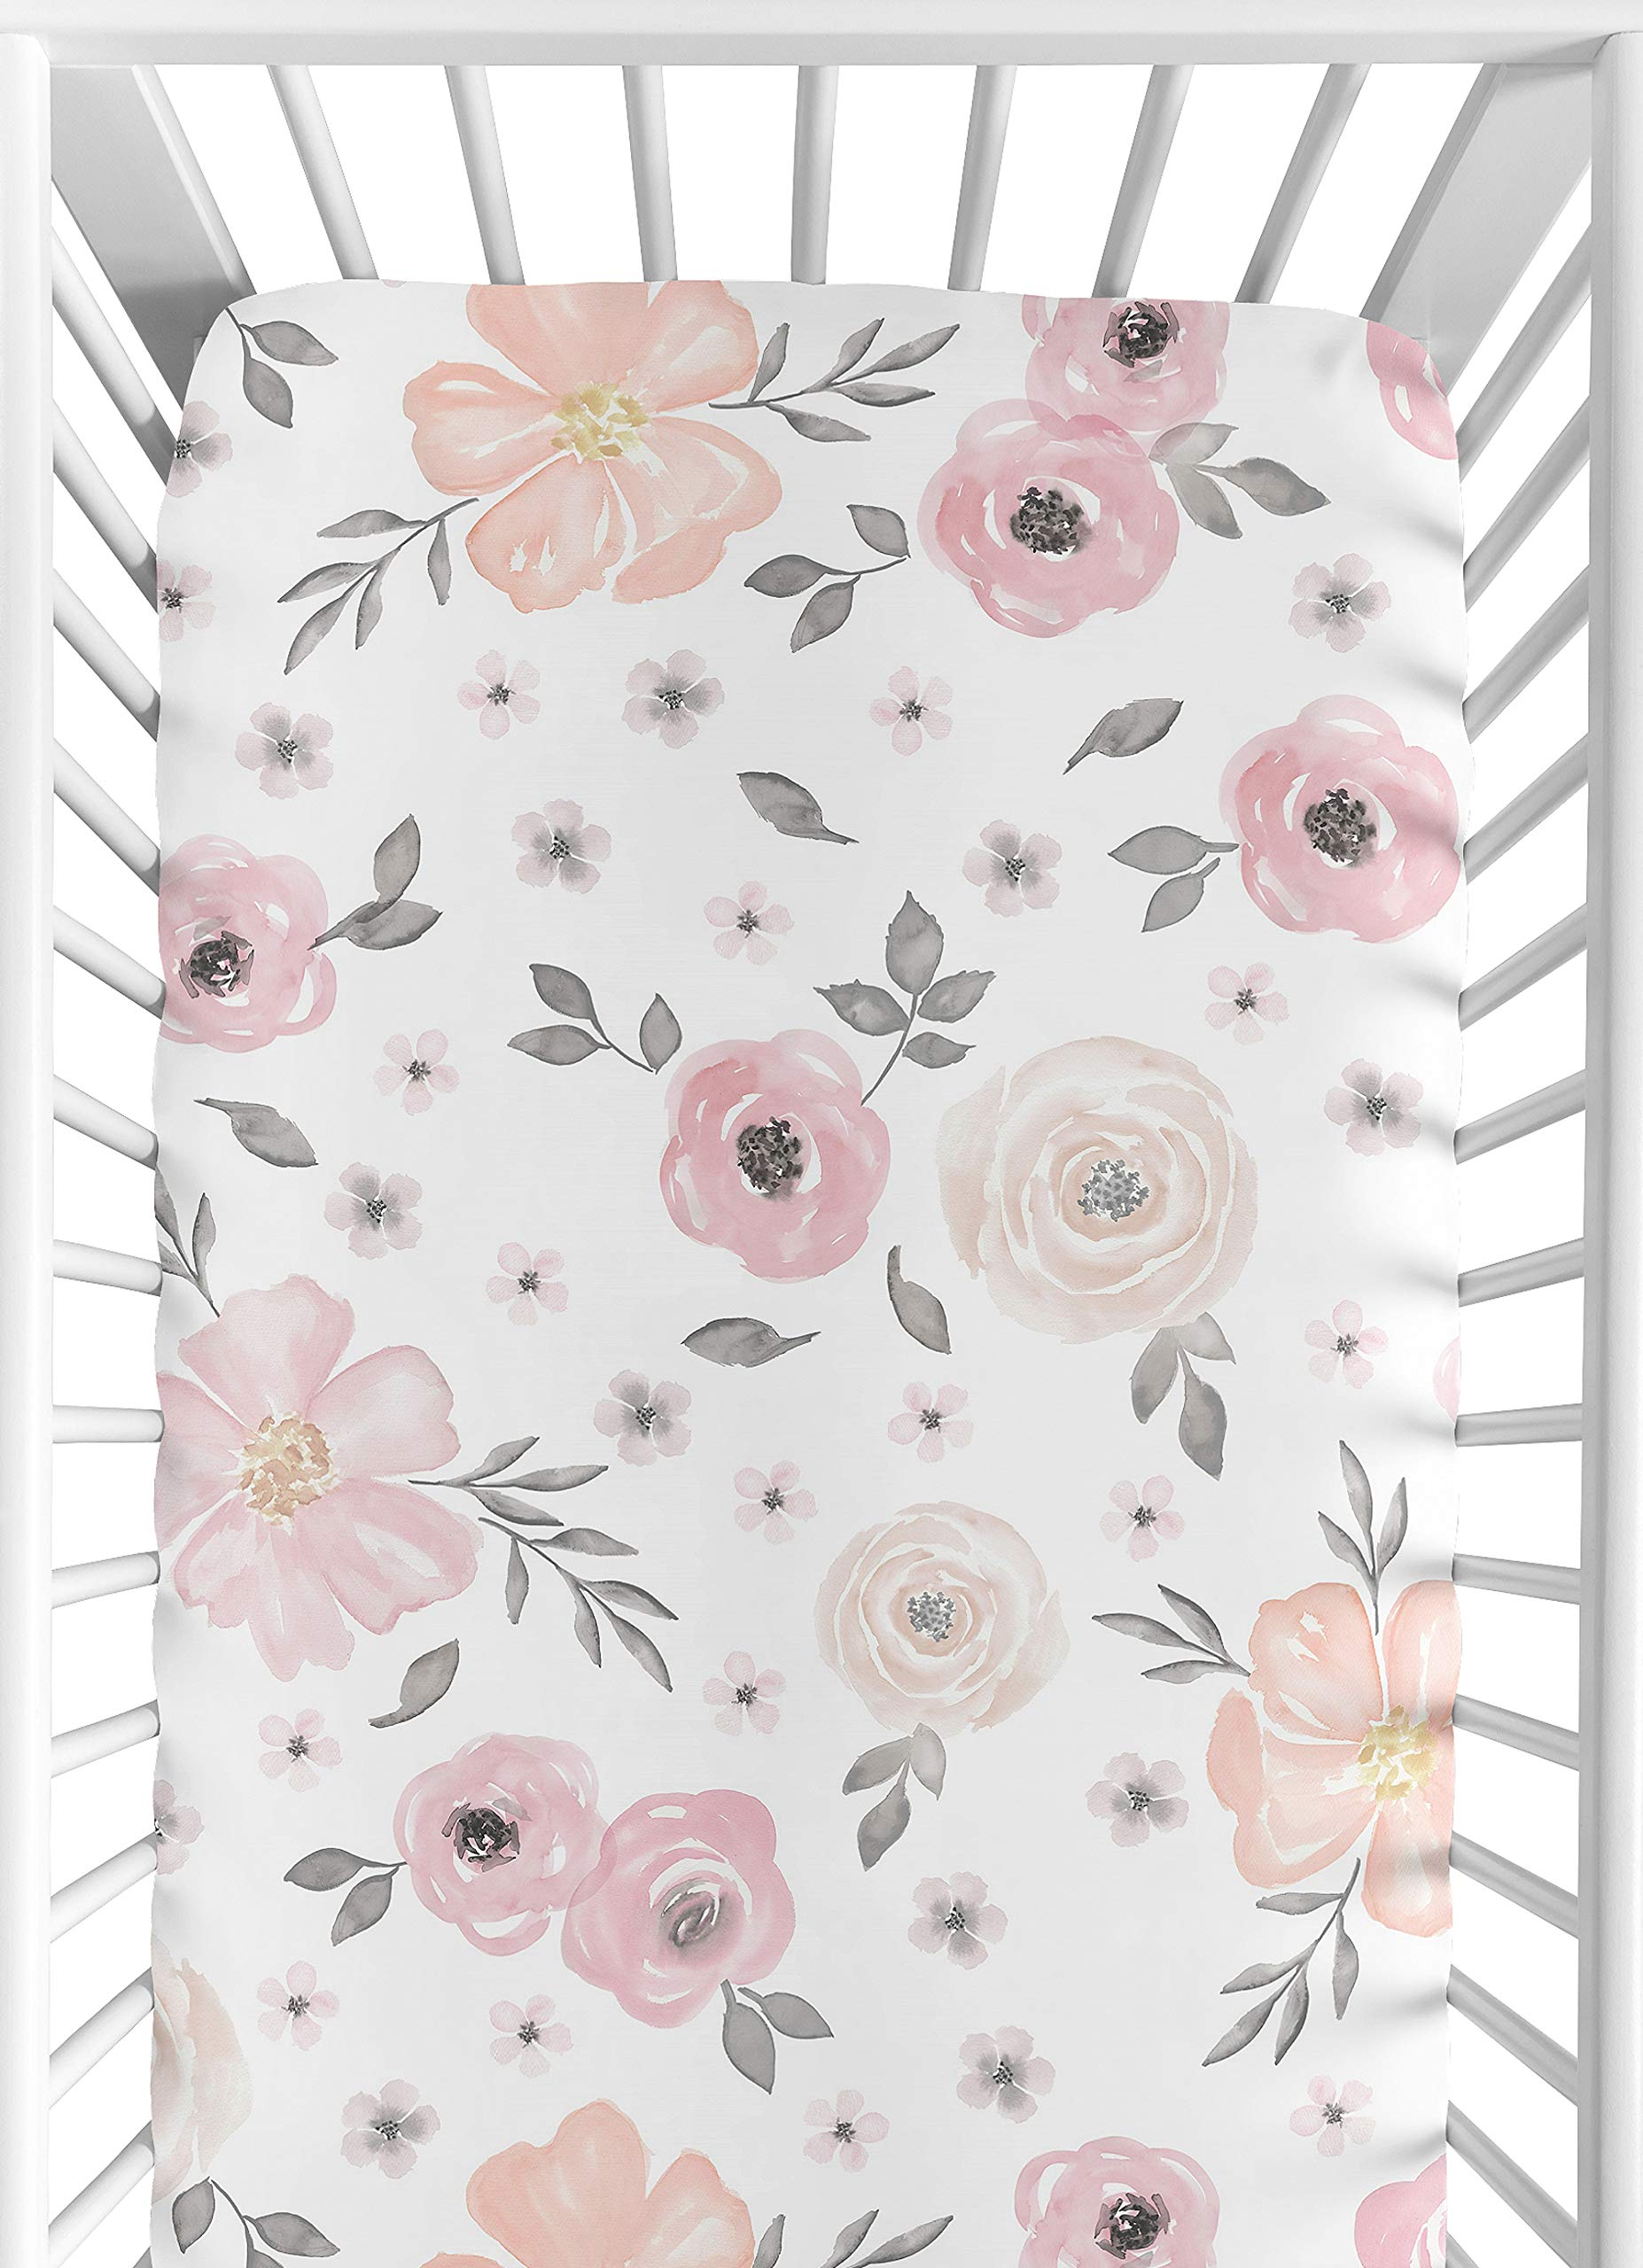 Sweet Jojo Designs Blush Pink, Grey and White Baby or Toddler Fitted Crib Sheet for Watercolor Floral Collection by Sweet Jojo Designs